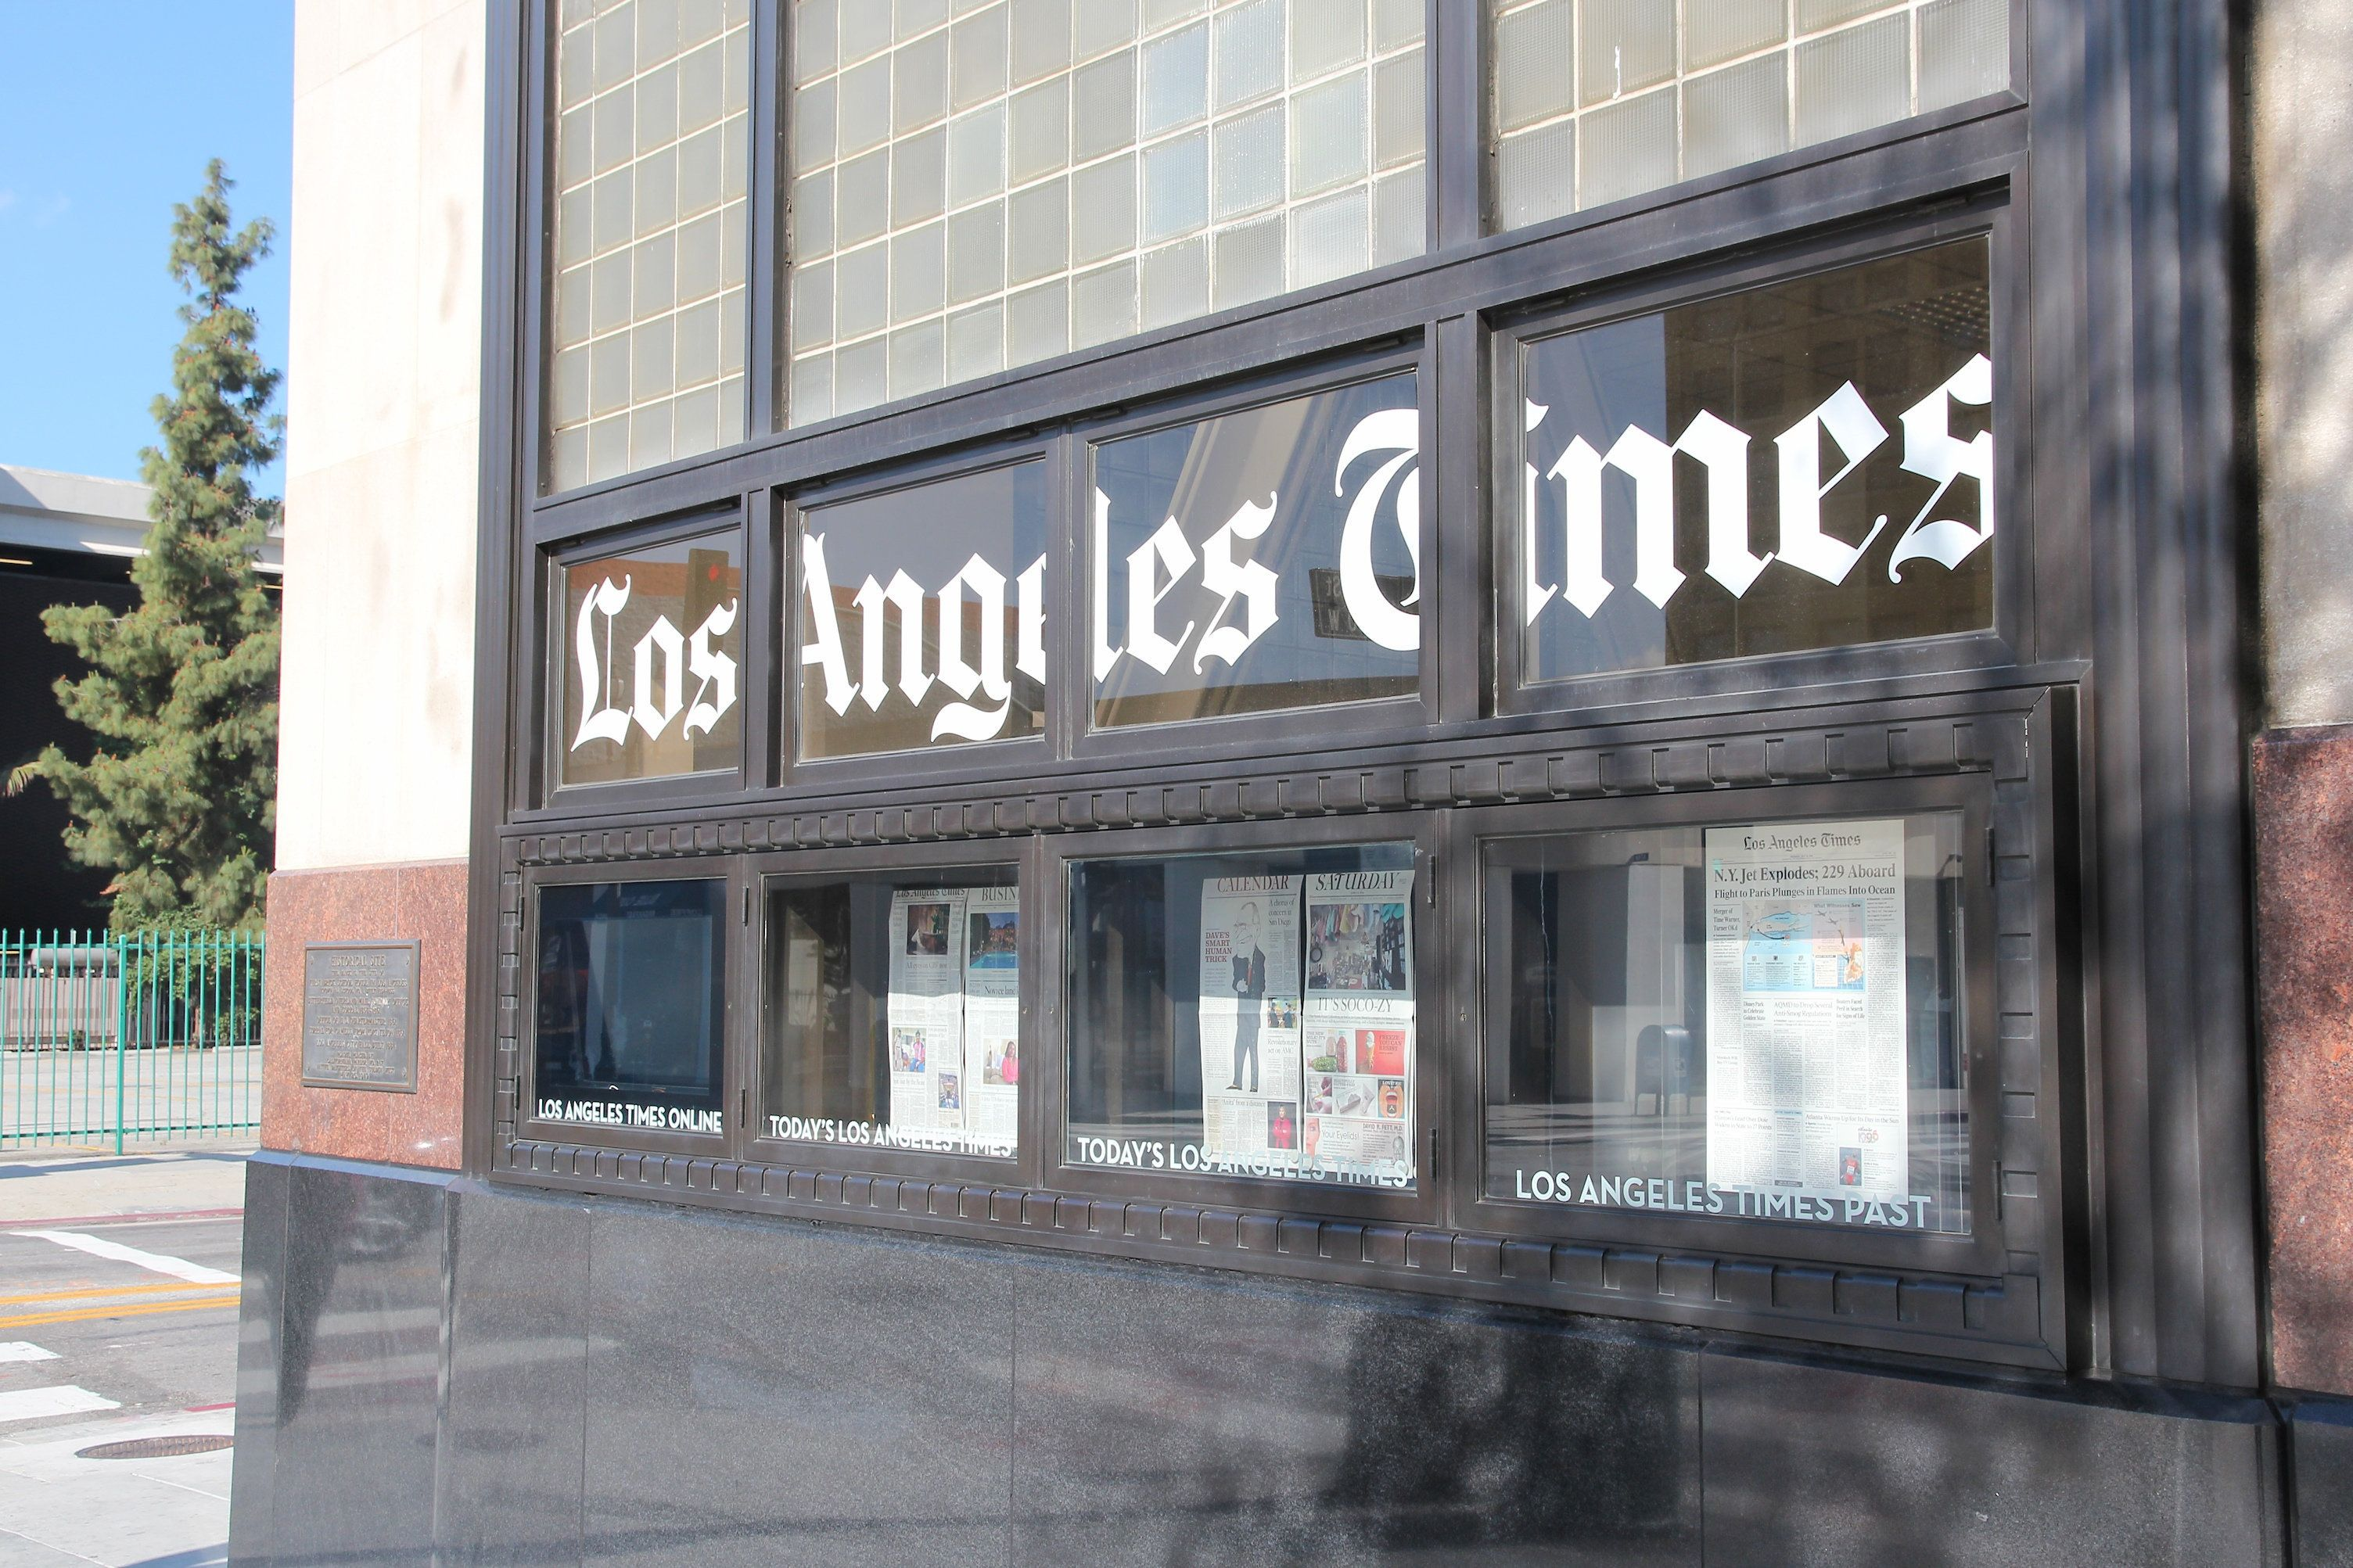 Los Angeles Times office in Los Angeles. LA Times has been published since 1881.